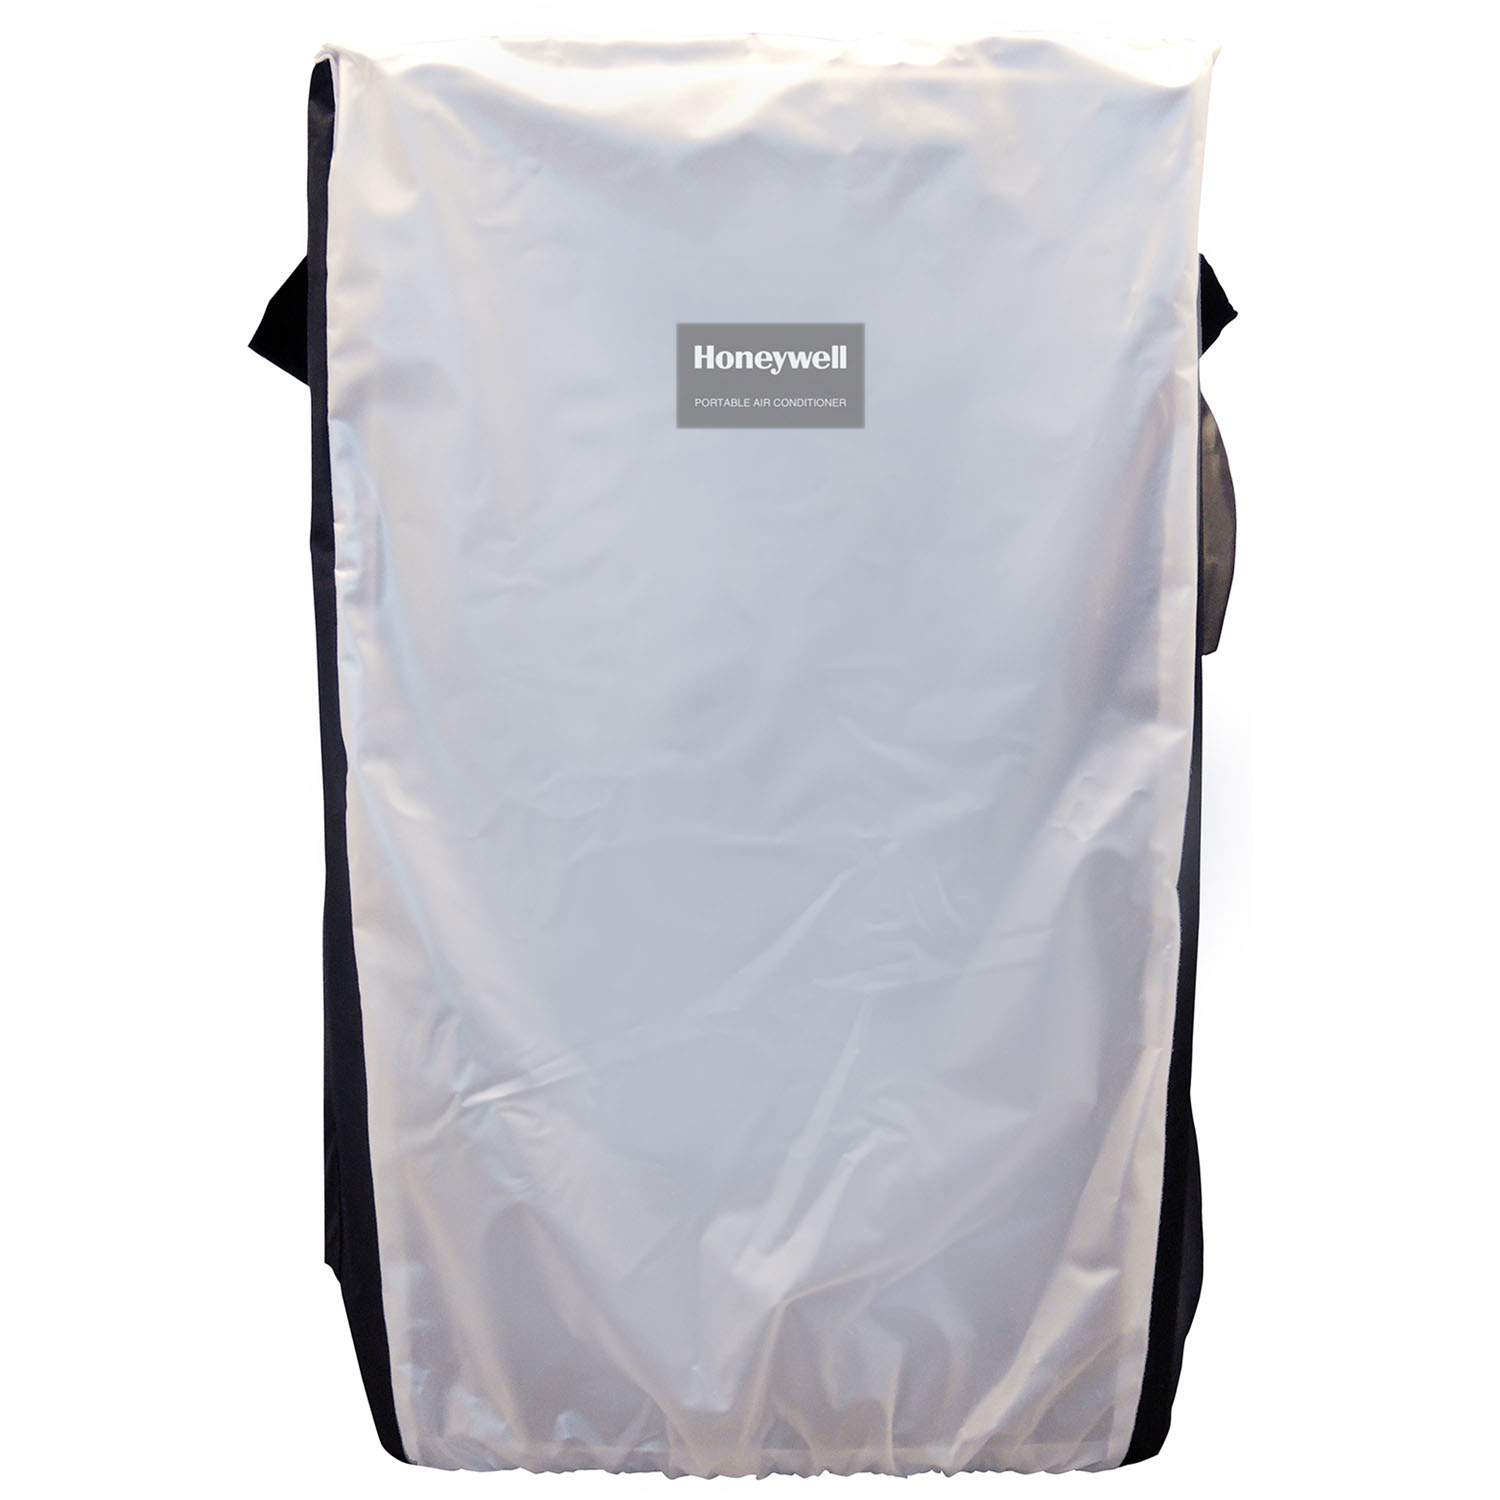 Honeywell Protective Cover with Pockets for Honeywell Portable ACs